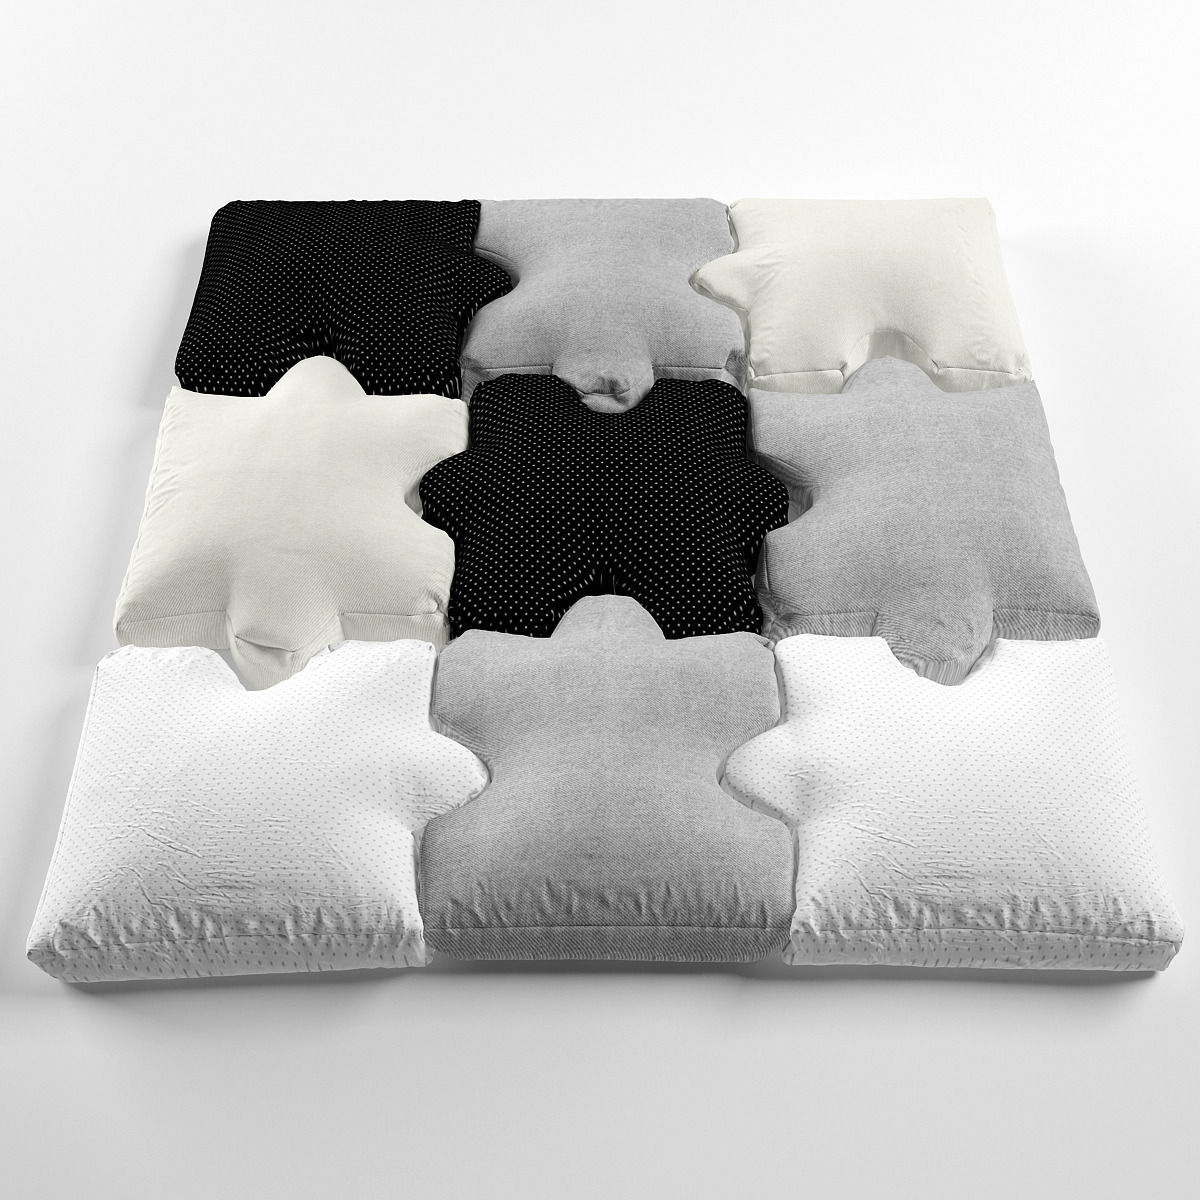 Pillow puzzle free 3d model max fbx for Architectural decoration crossword clue